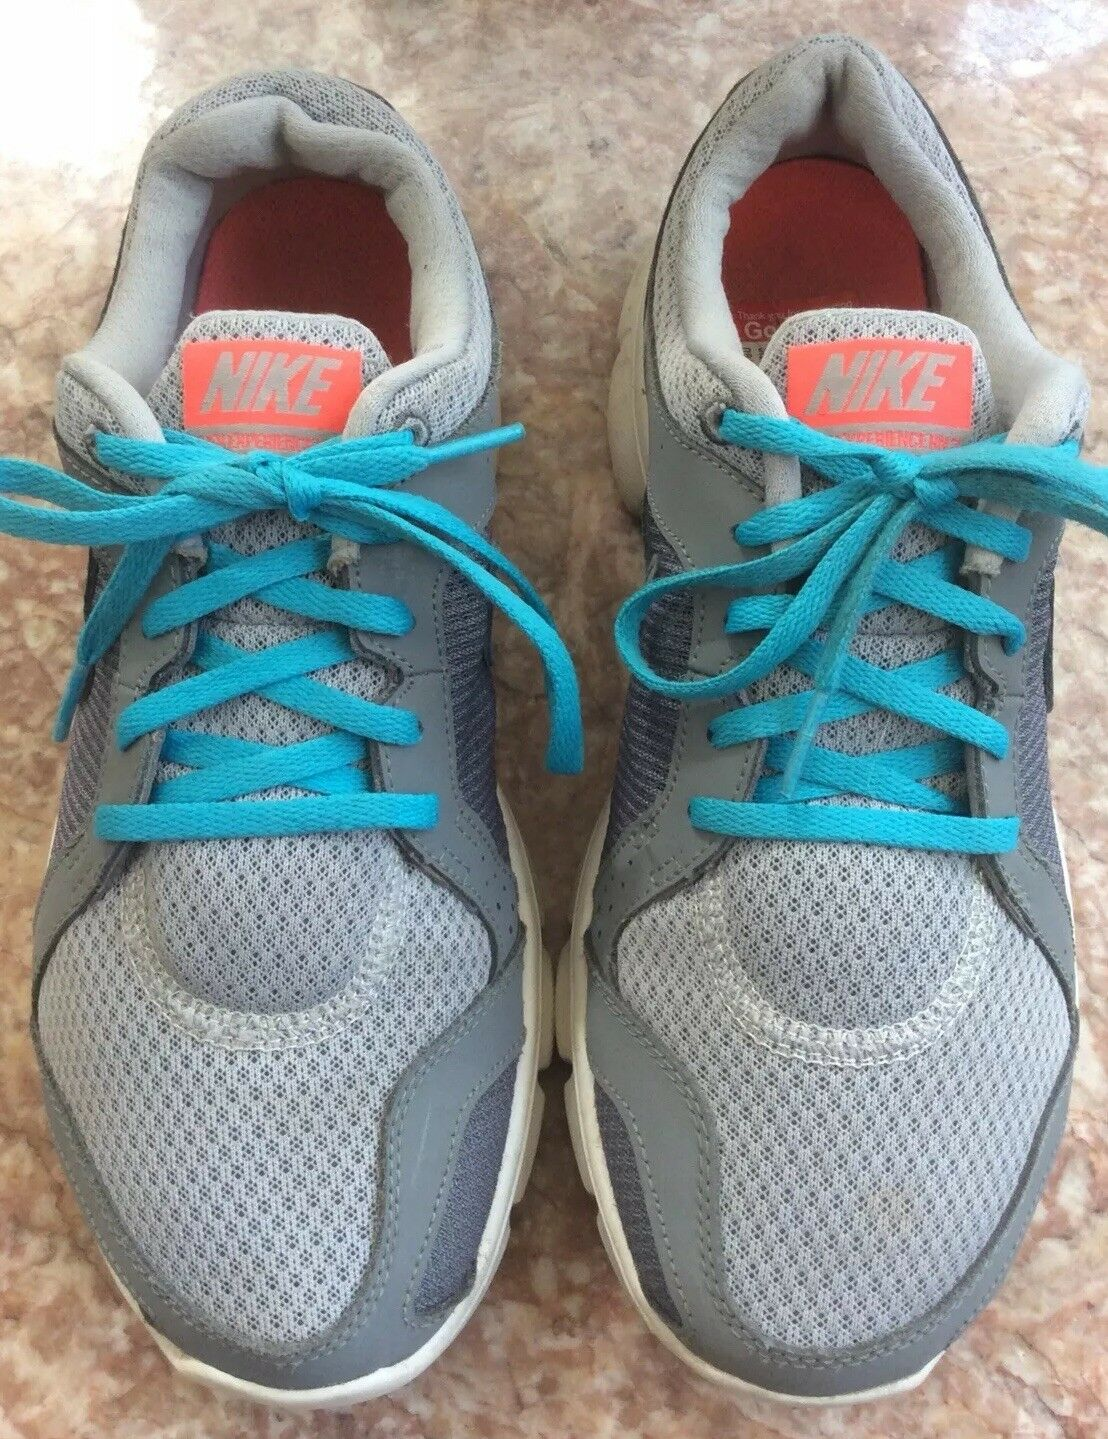 153674a31eb ... NIKE FLEX Experience RN 2 2 2 Women s Gray Blue Running Shoes Size 8.5  0ab954 ...